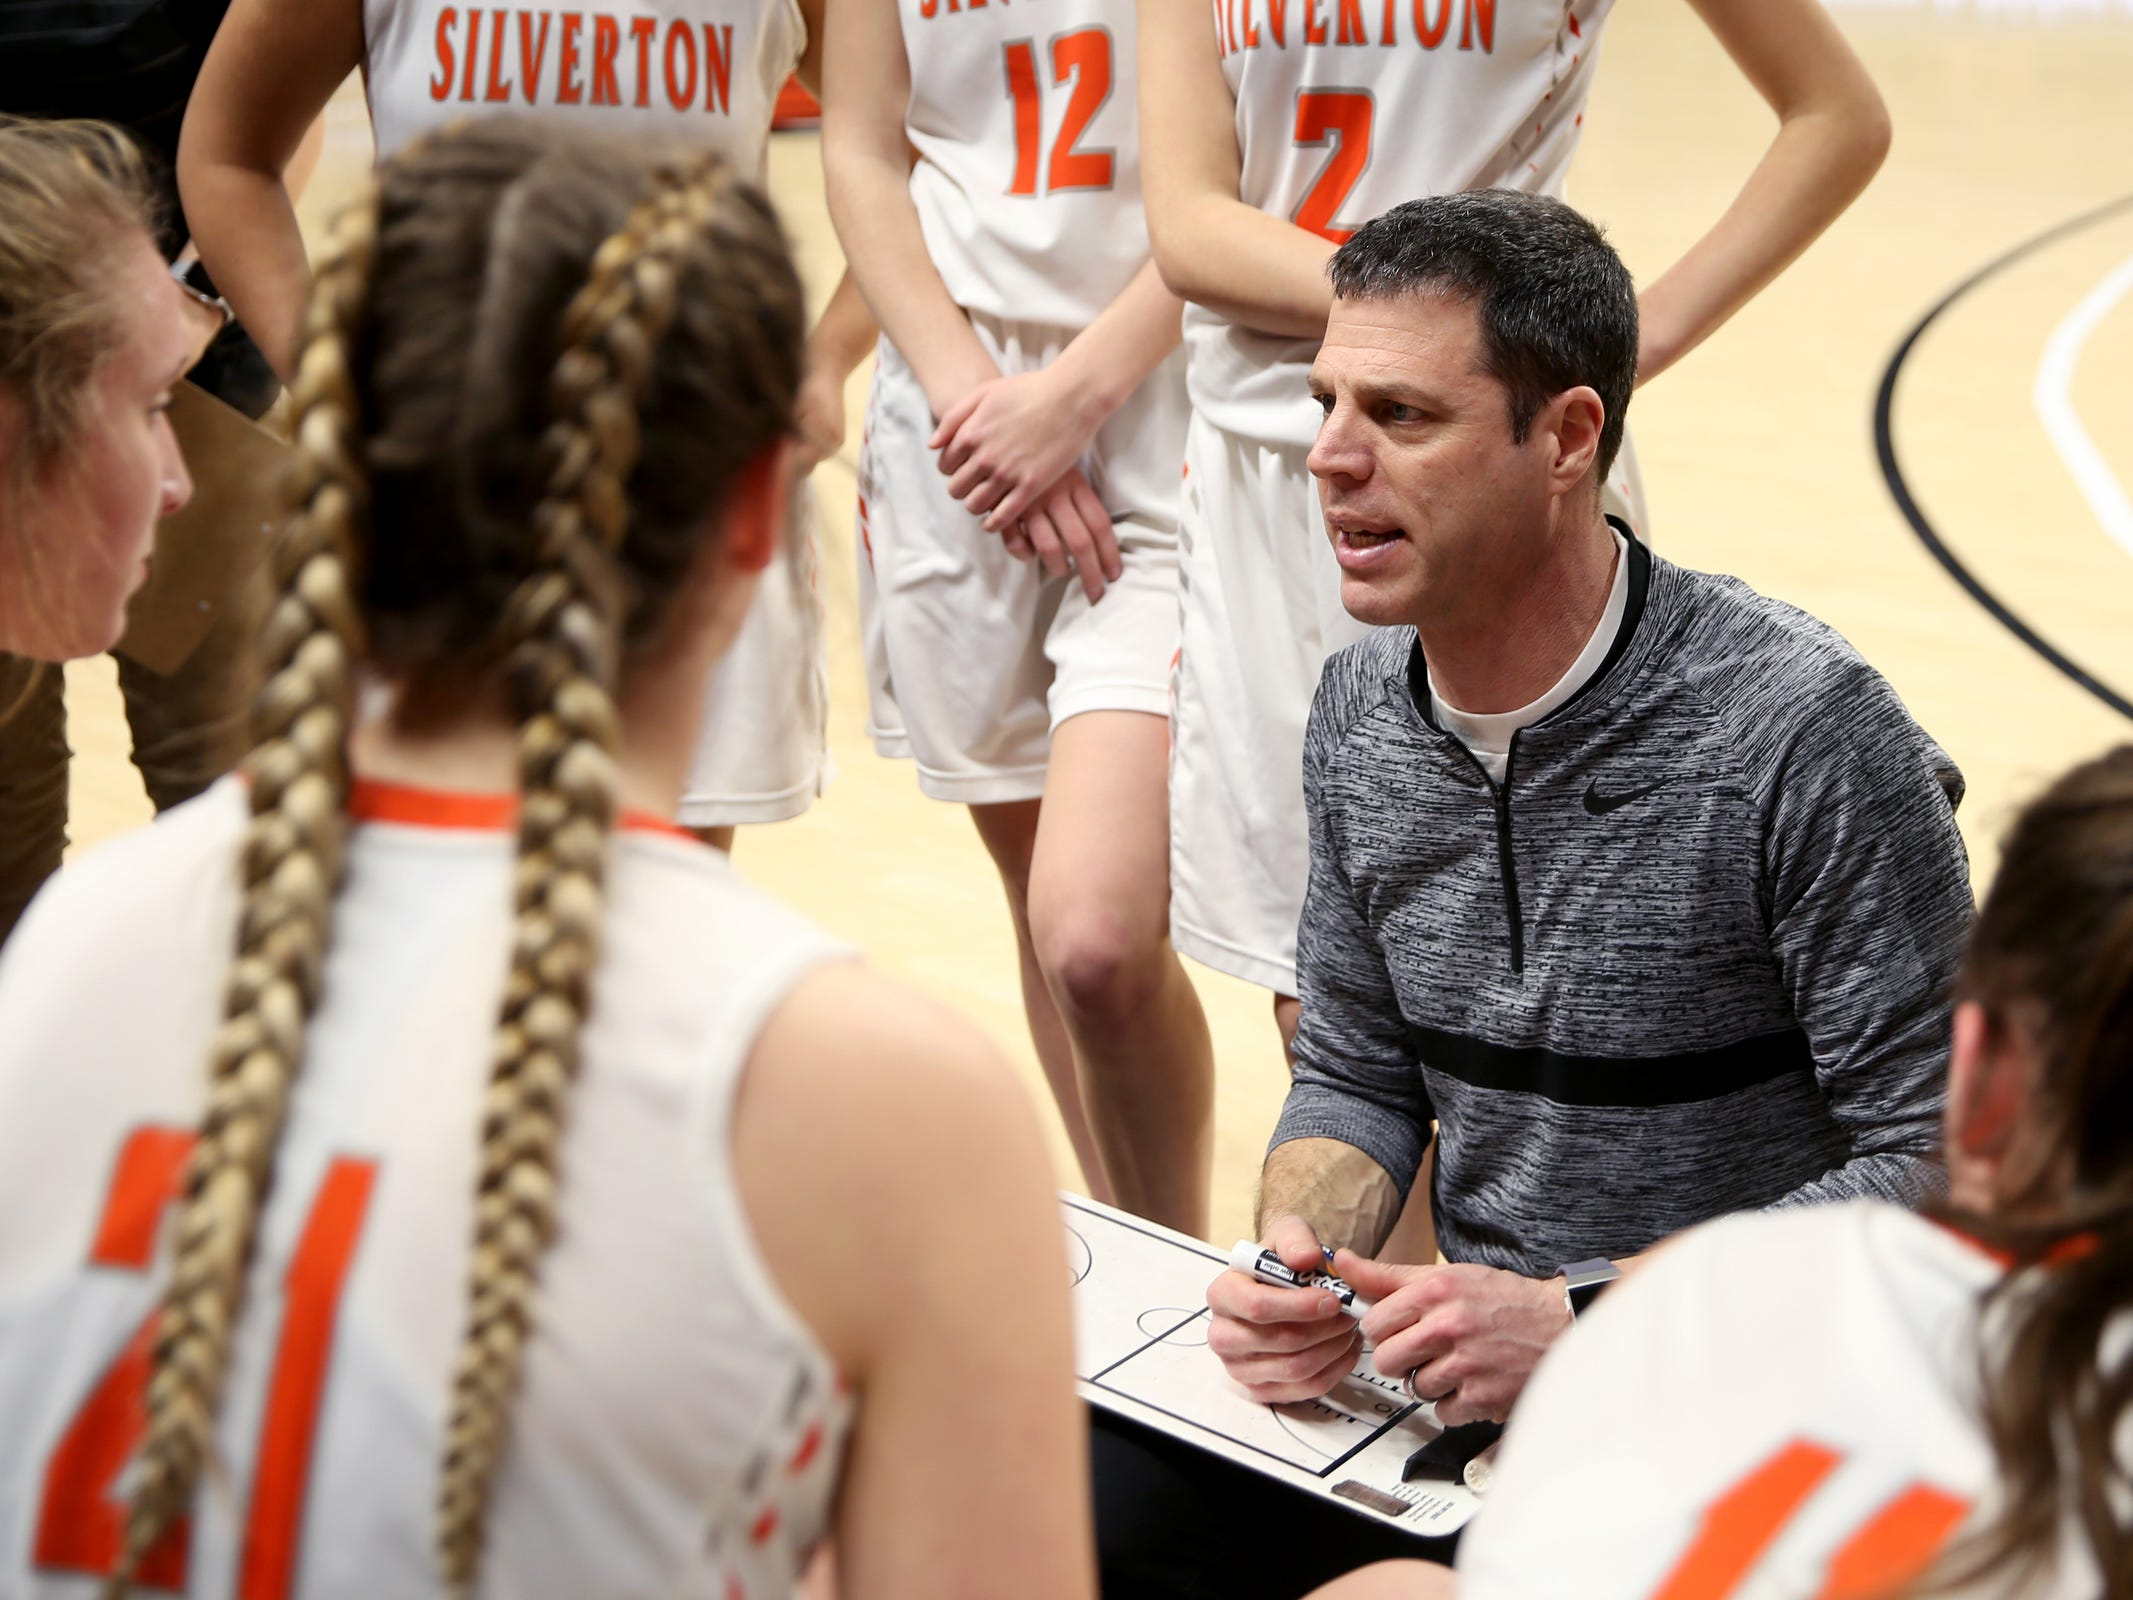 Silverton head coach Tal Wold talks to his team during a break in the second half of the La Salle Prep vs. Silverton girls basketball game in the OSAA Class 5A quarterfinals at Oregon State University in Corvallis on Thursday, March 7, 2019. La Salle Prep won the game 57-46.